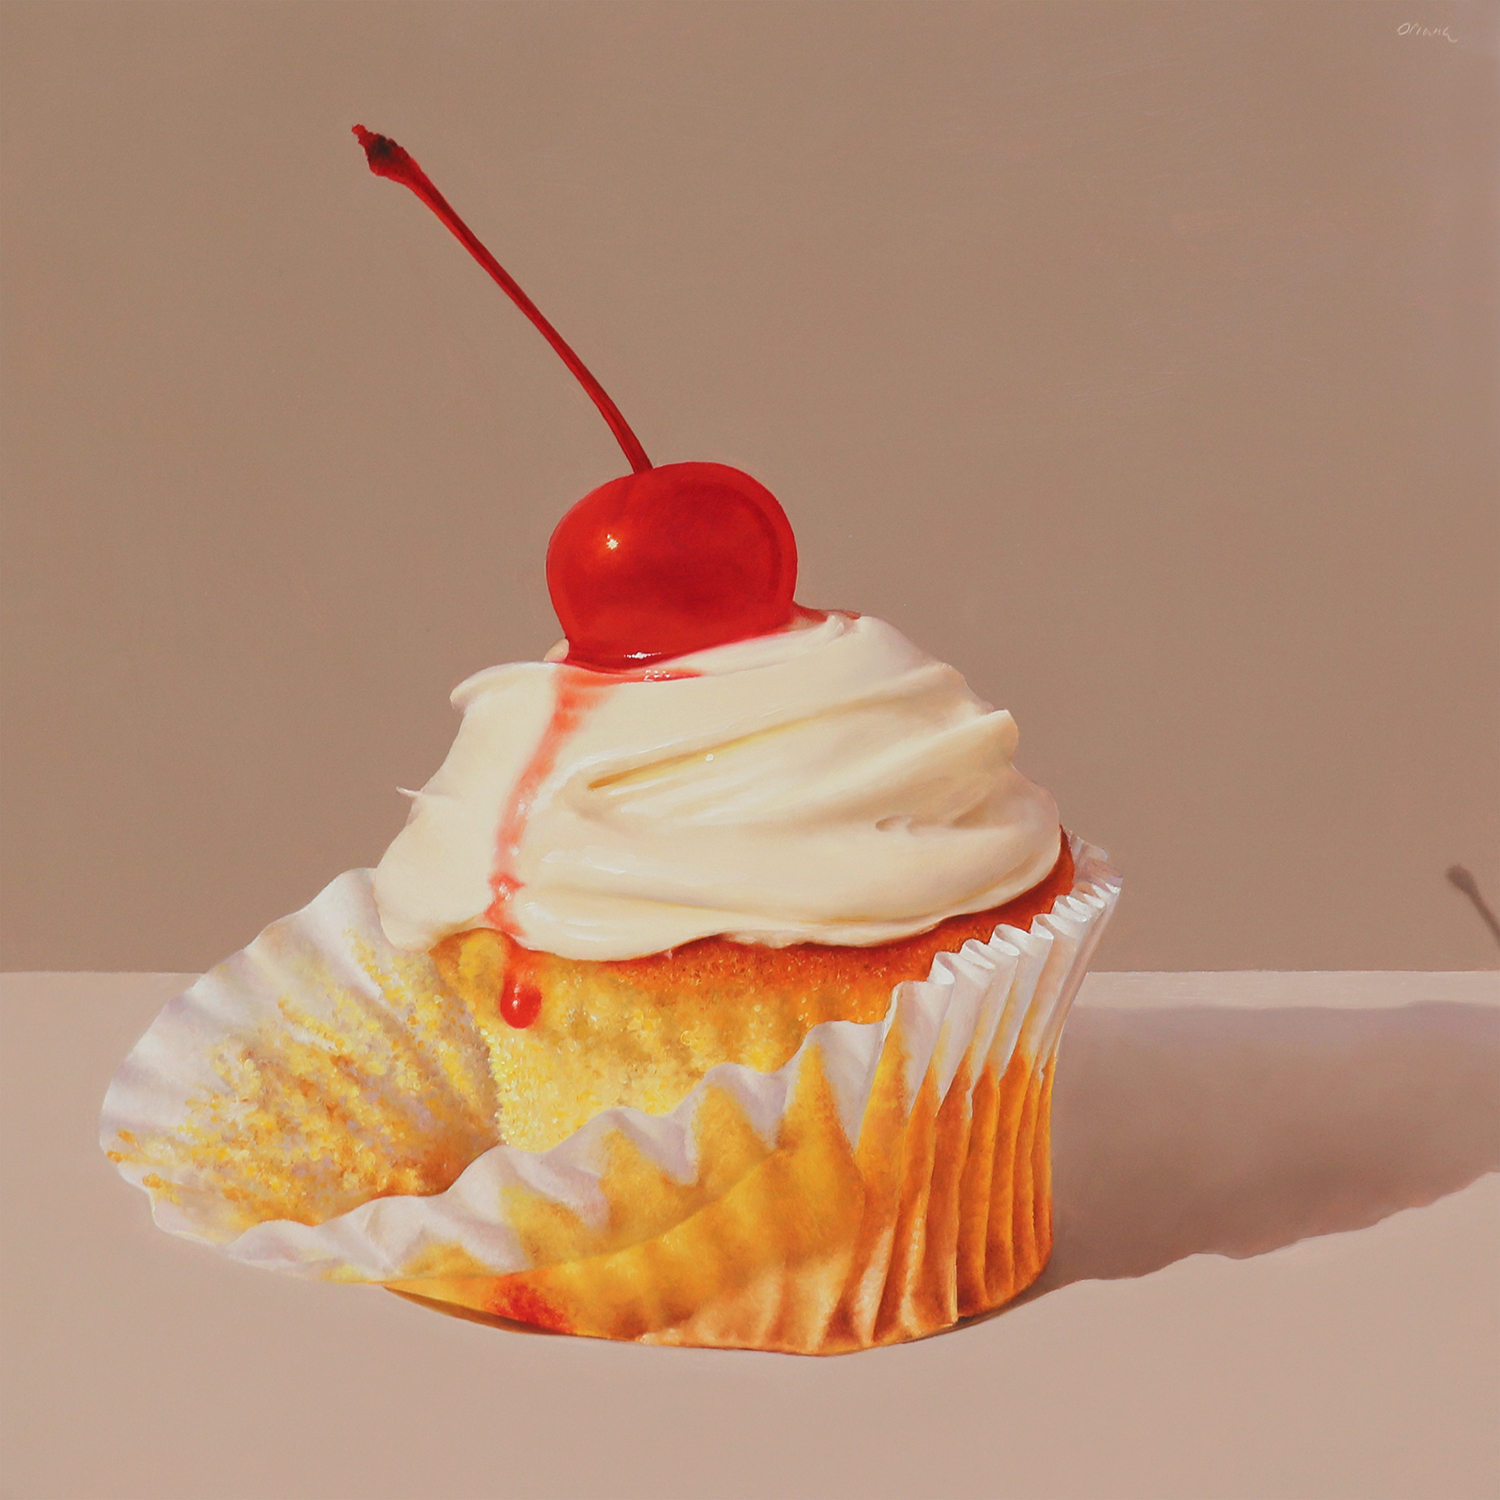 Cupcake with Maraschino Cherry  oil on panel / 12 x 12 inches  SOLD